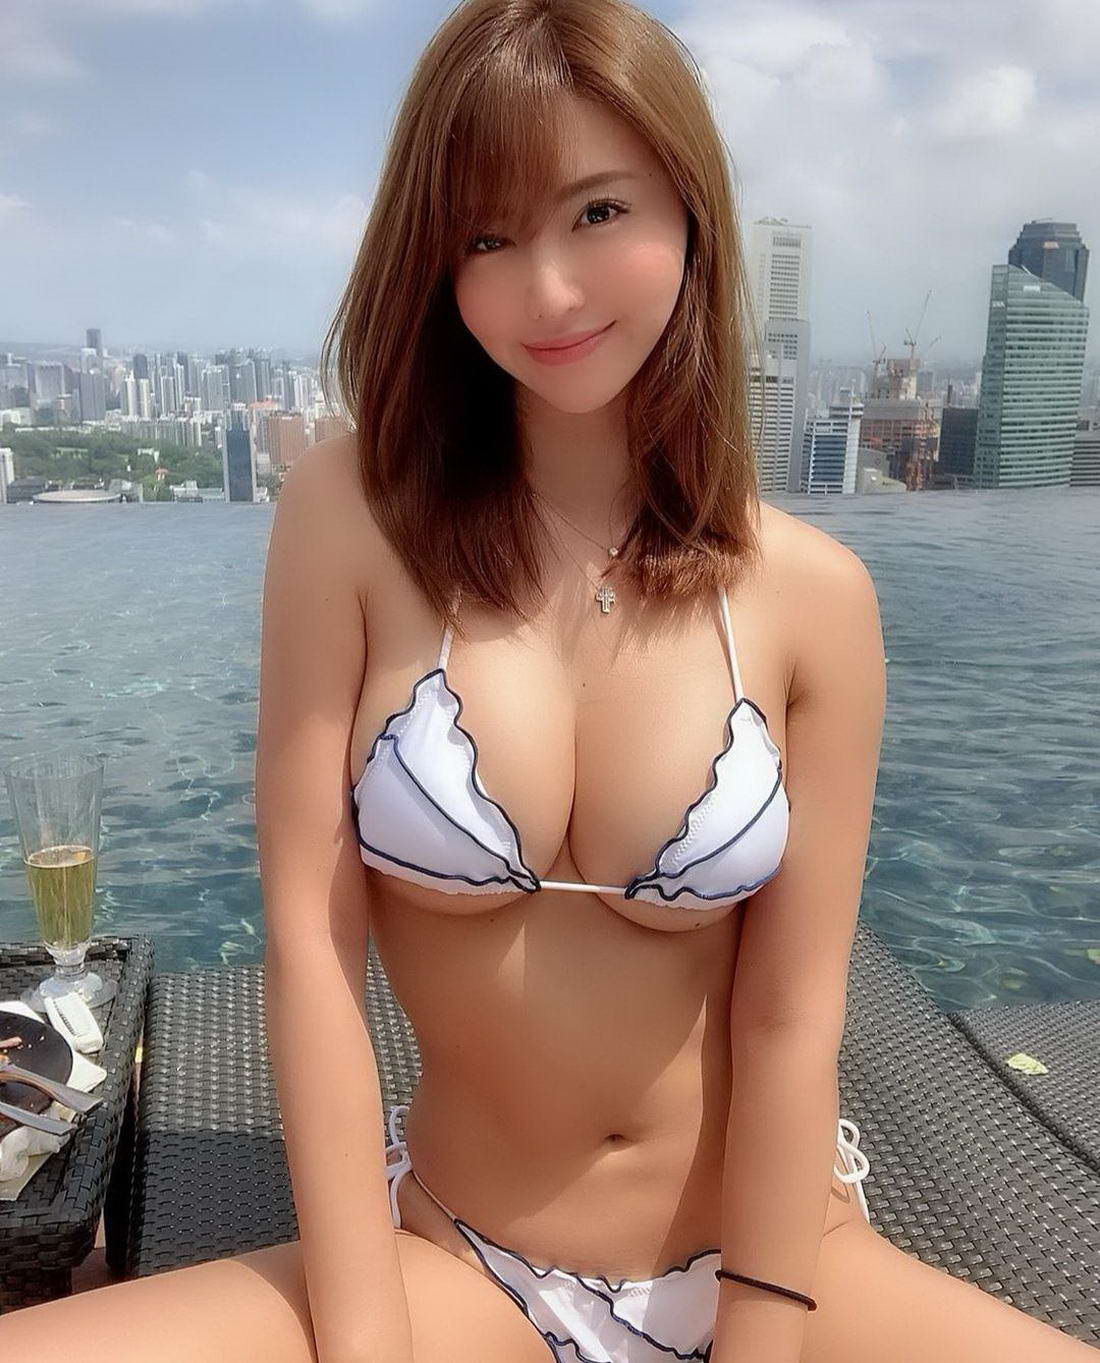 Sexy Hot Asian Girls (46 Photos) - Page 2 of 5 - The Viraler